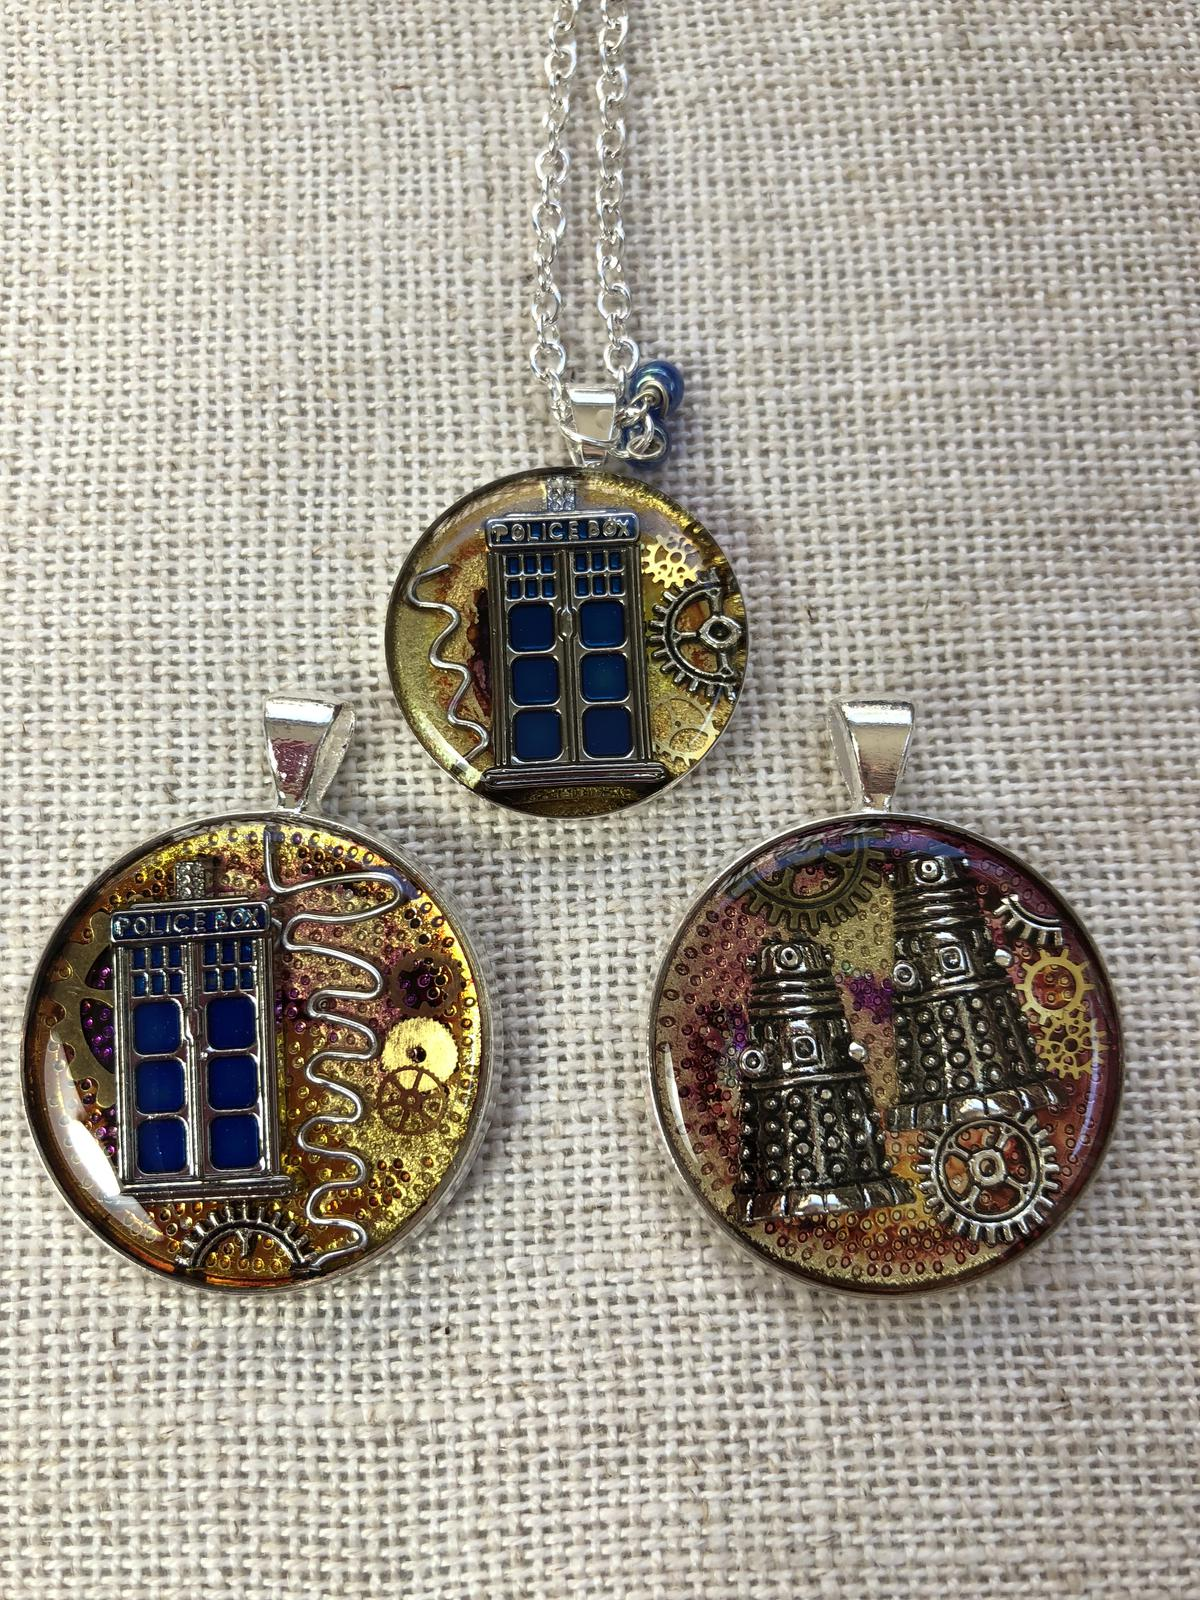 For all Whovians! Resin pendants, 25mm